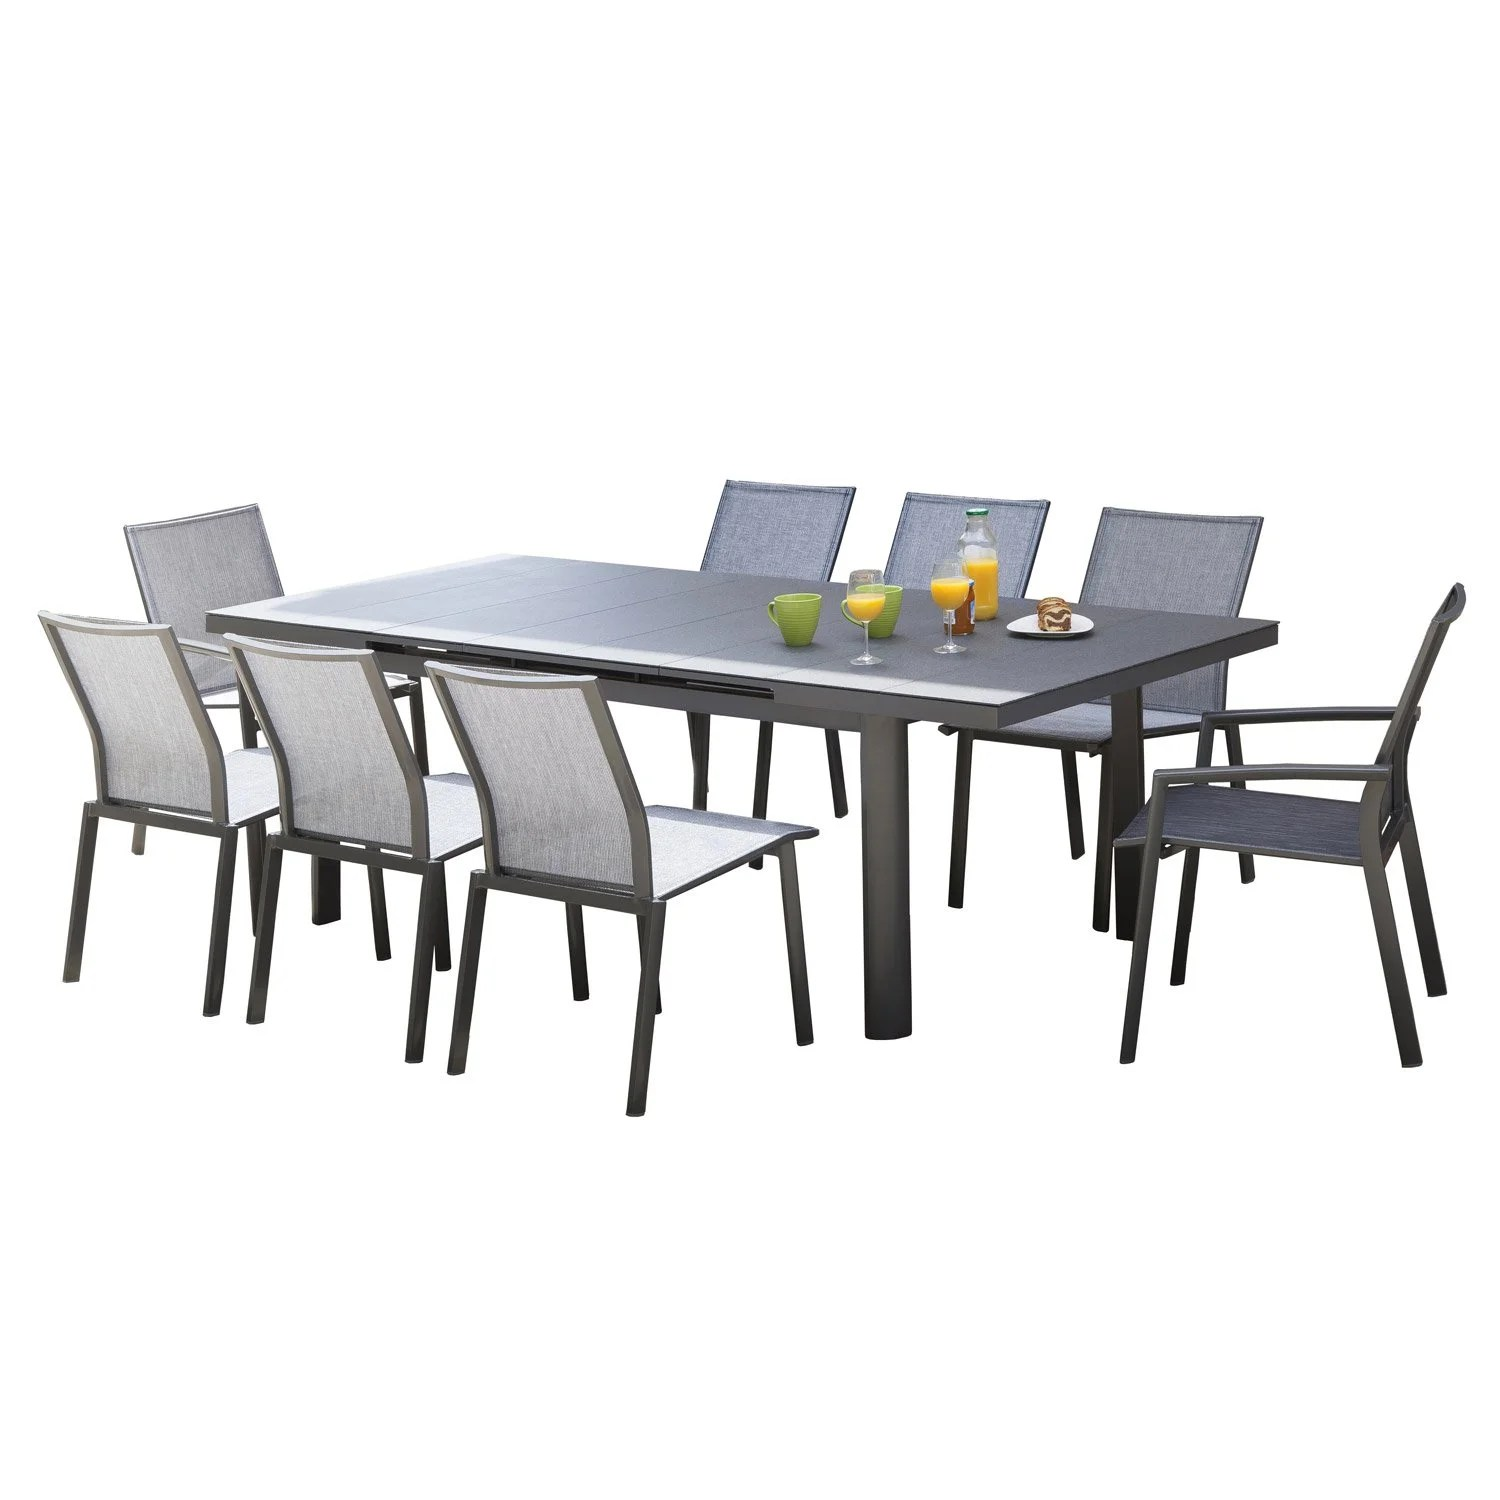 Table Fer Jardin Table De Jardin Bora Rectangulaire Gris 8 Personnes